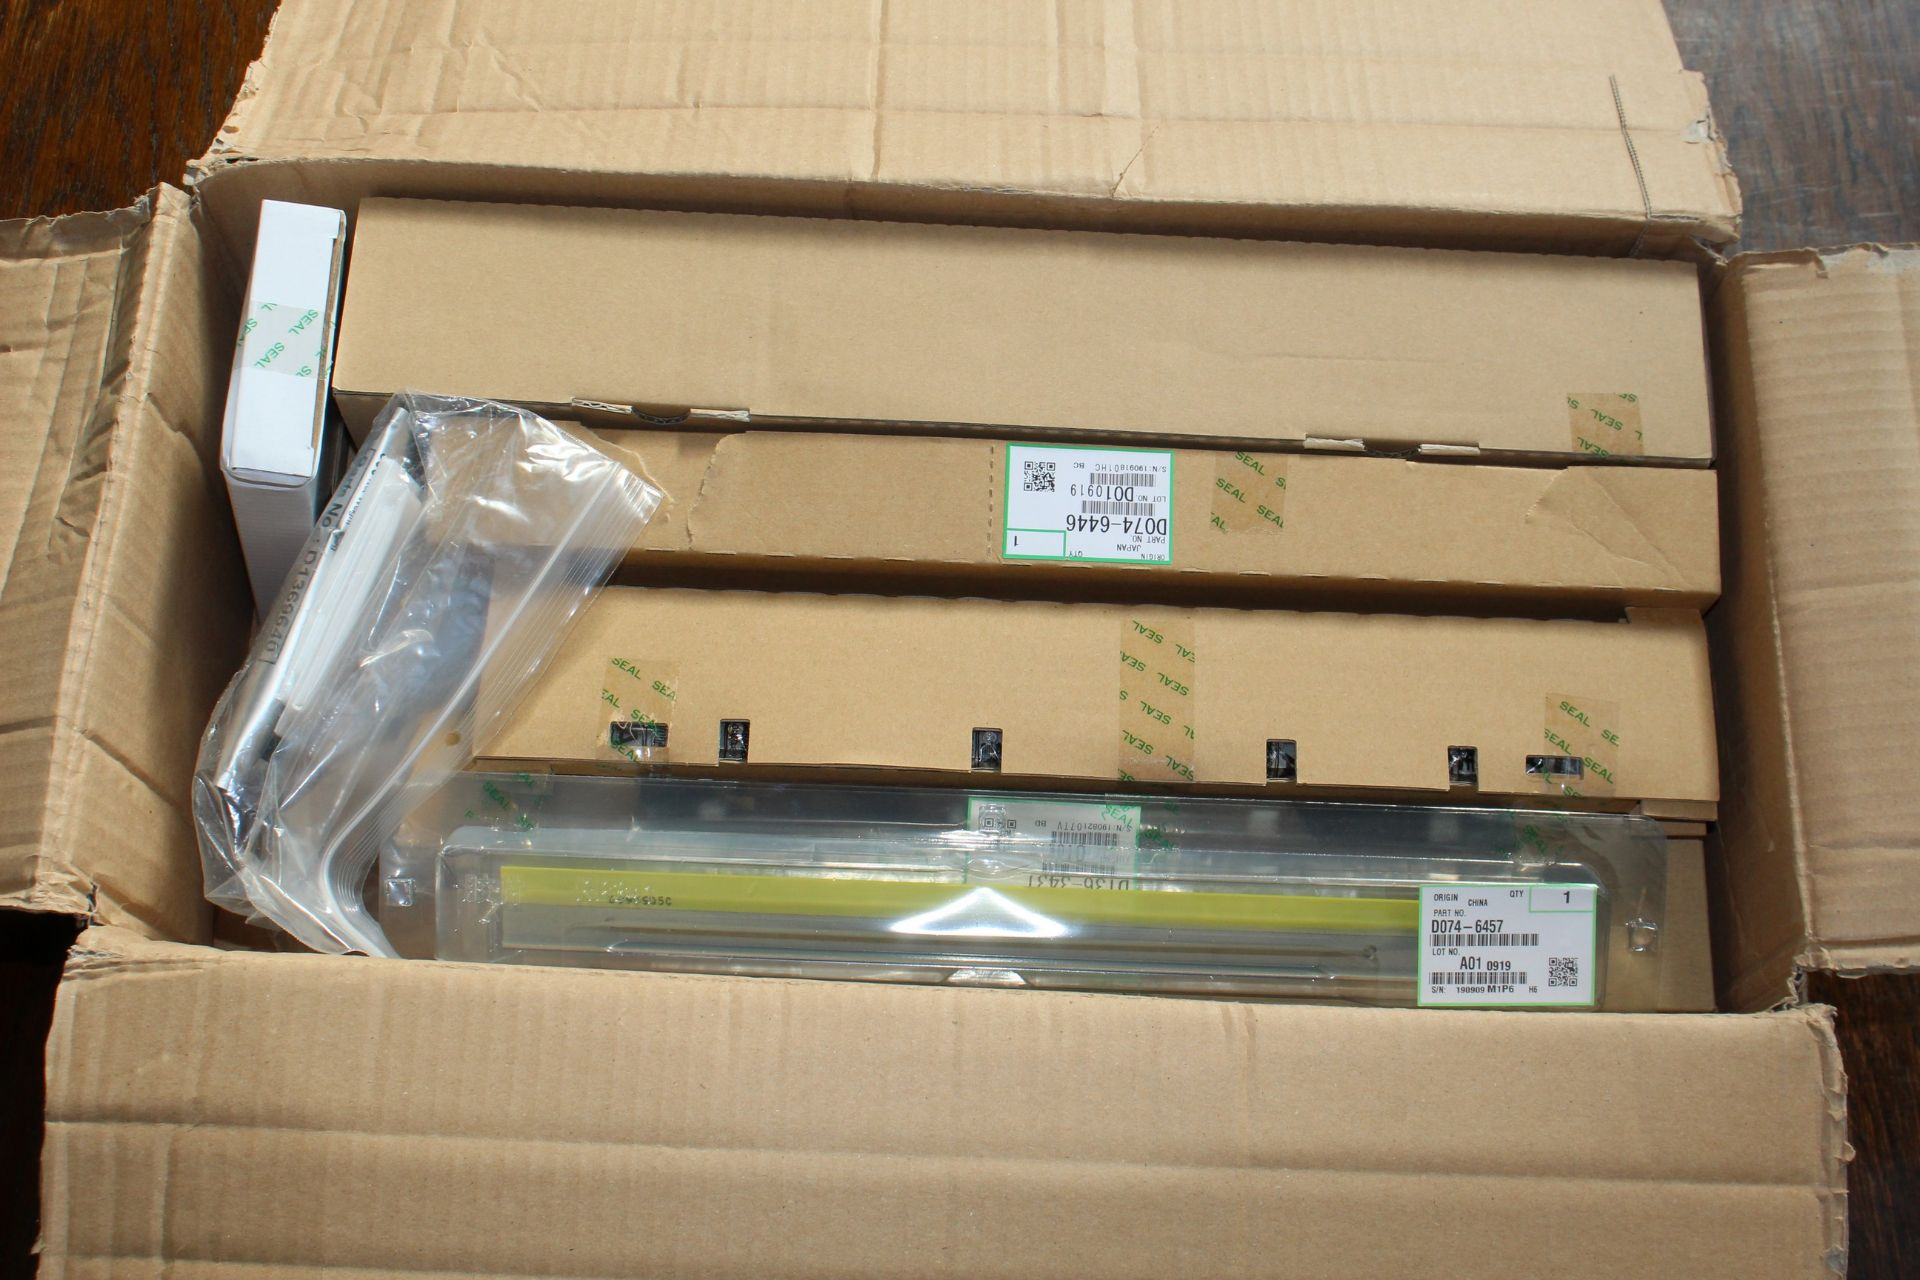 COLLECTION ONLY: A quantity of assorted printer parts and cartridges. - Image 6 of 7